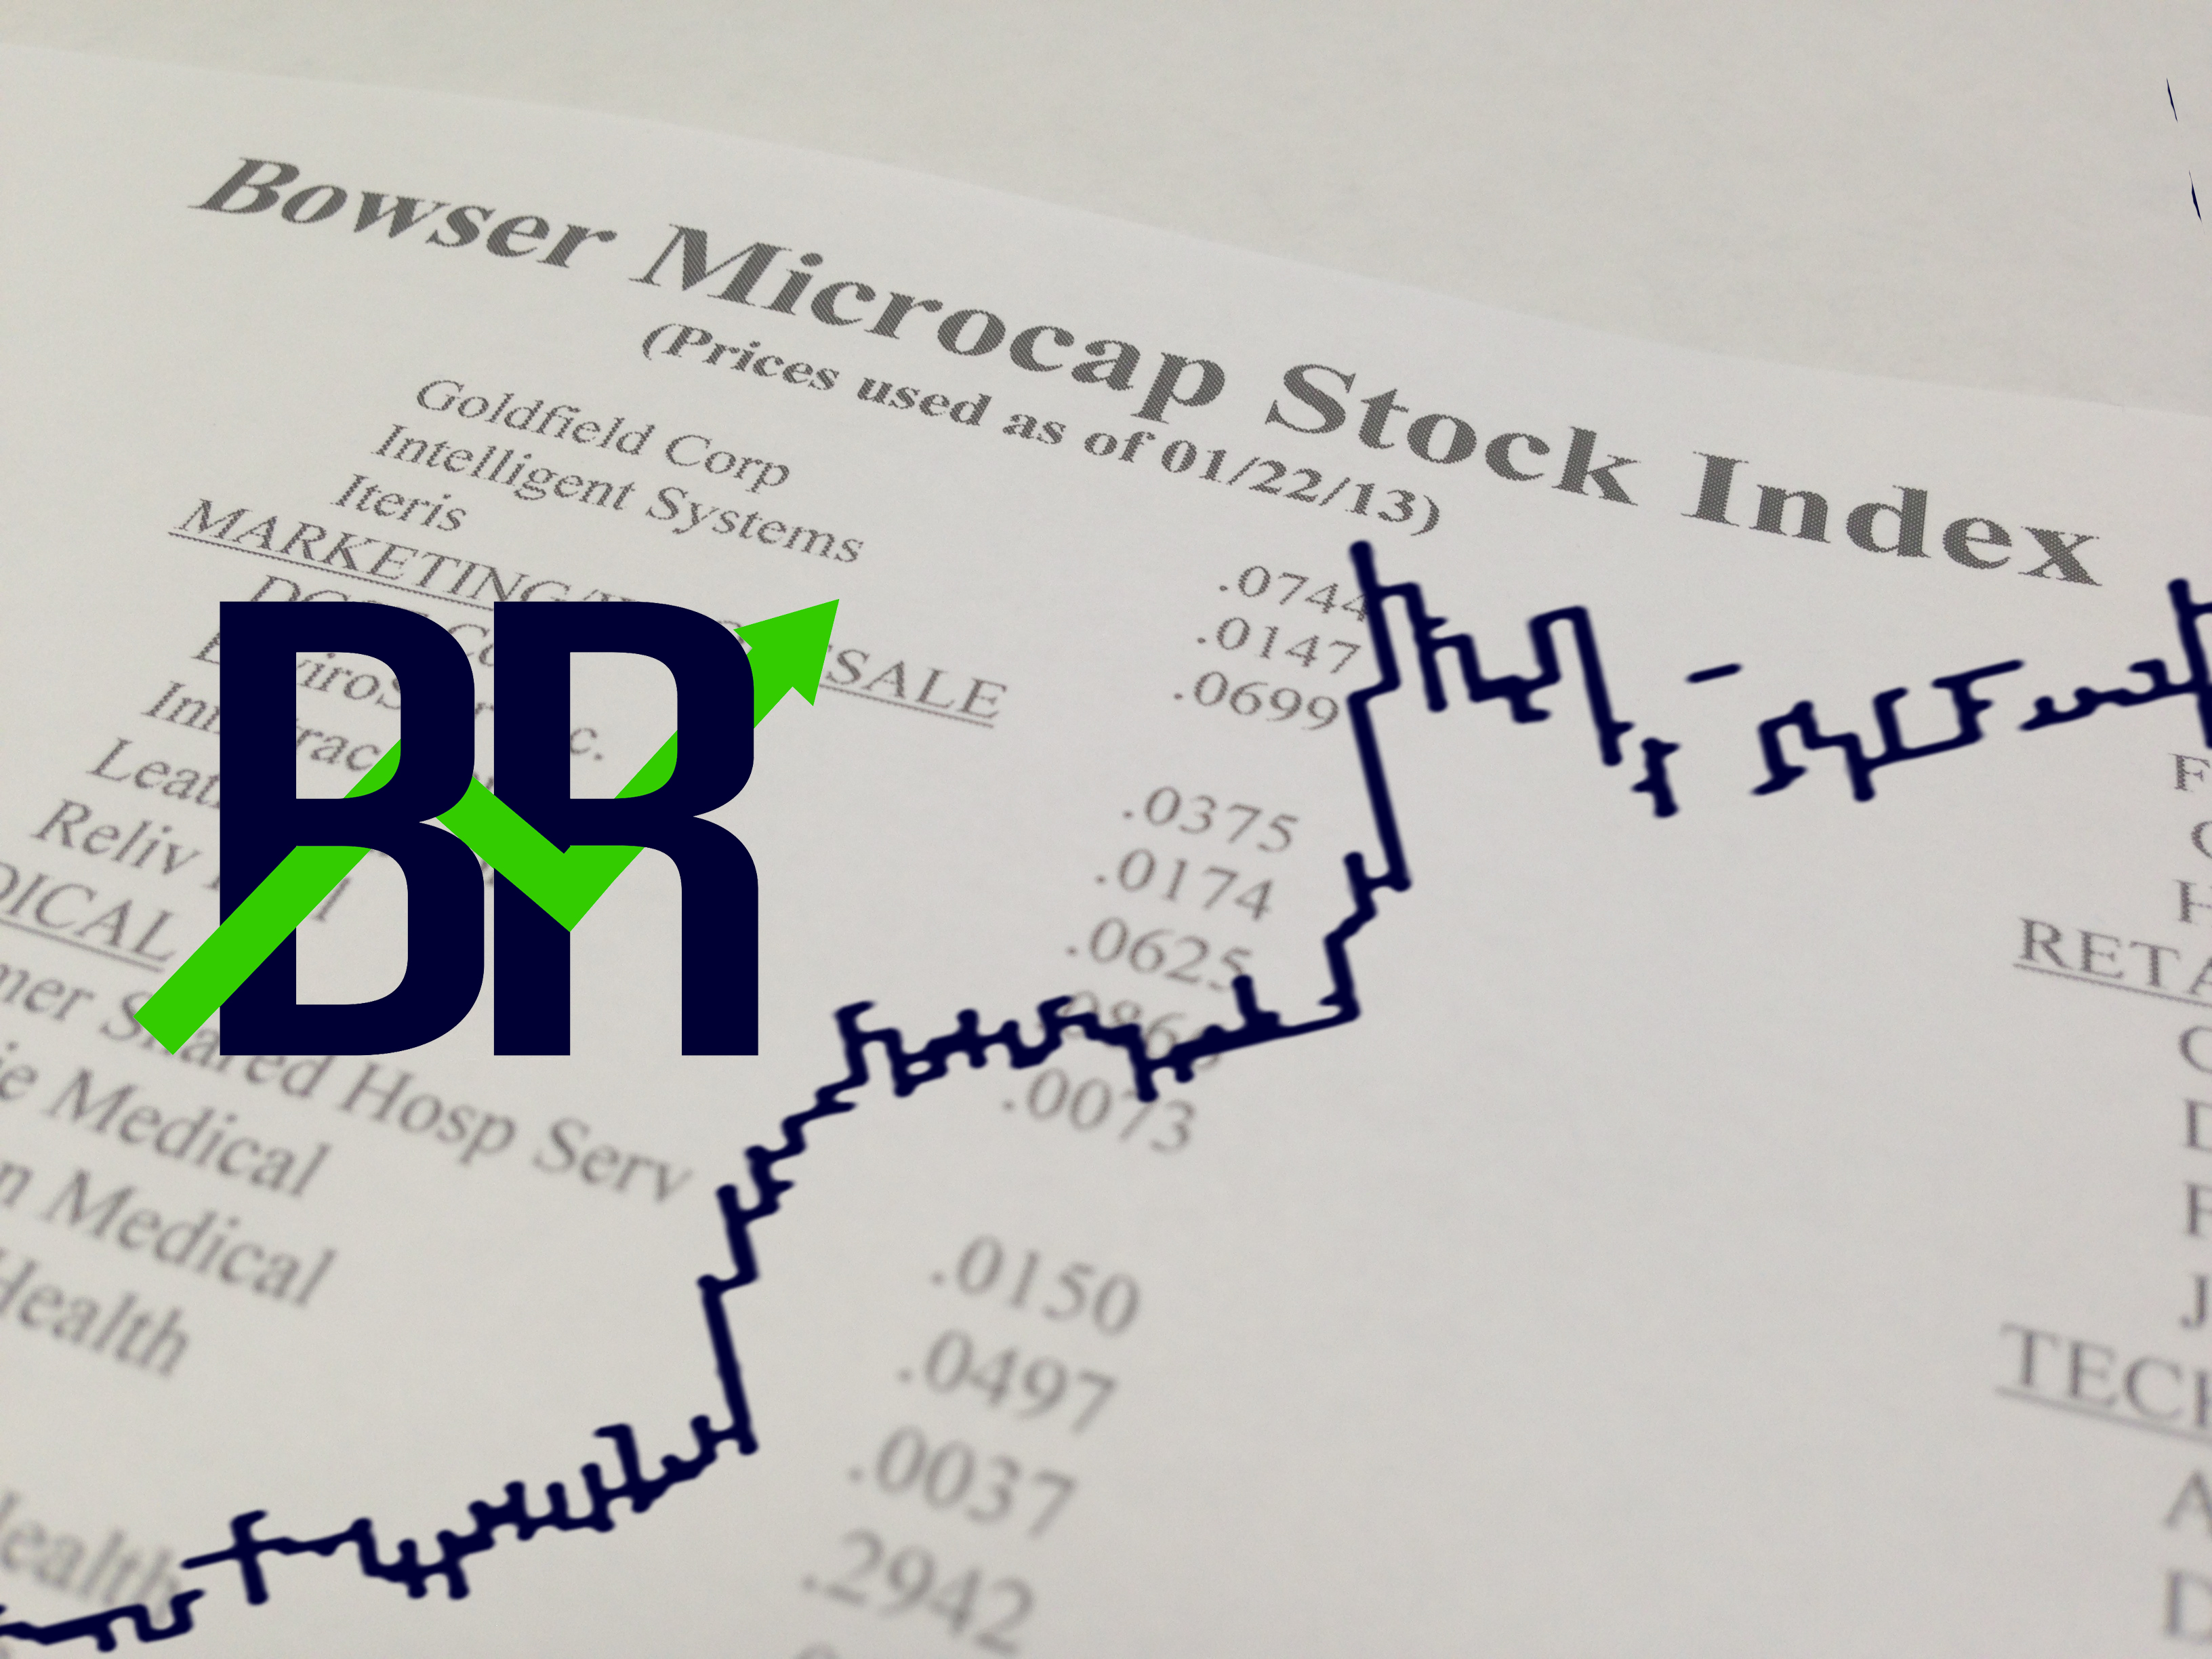 Bowser Microcap Stock Index